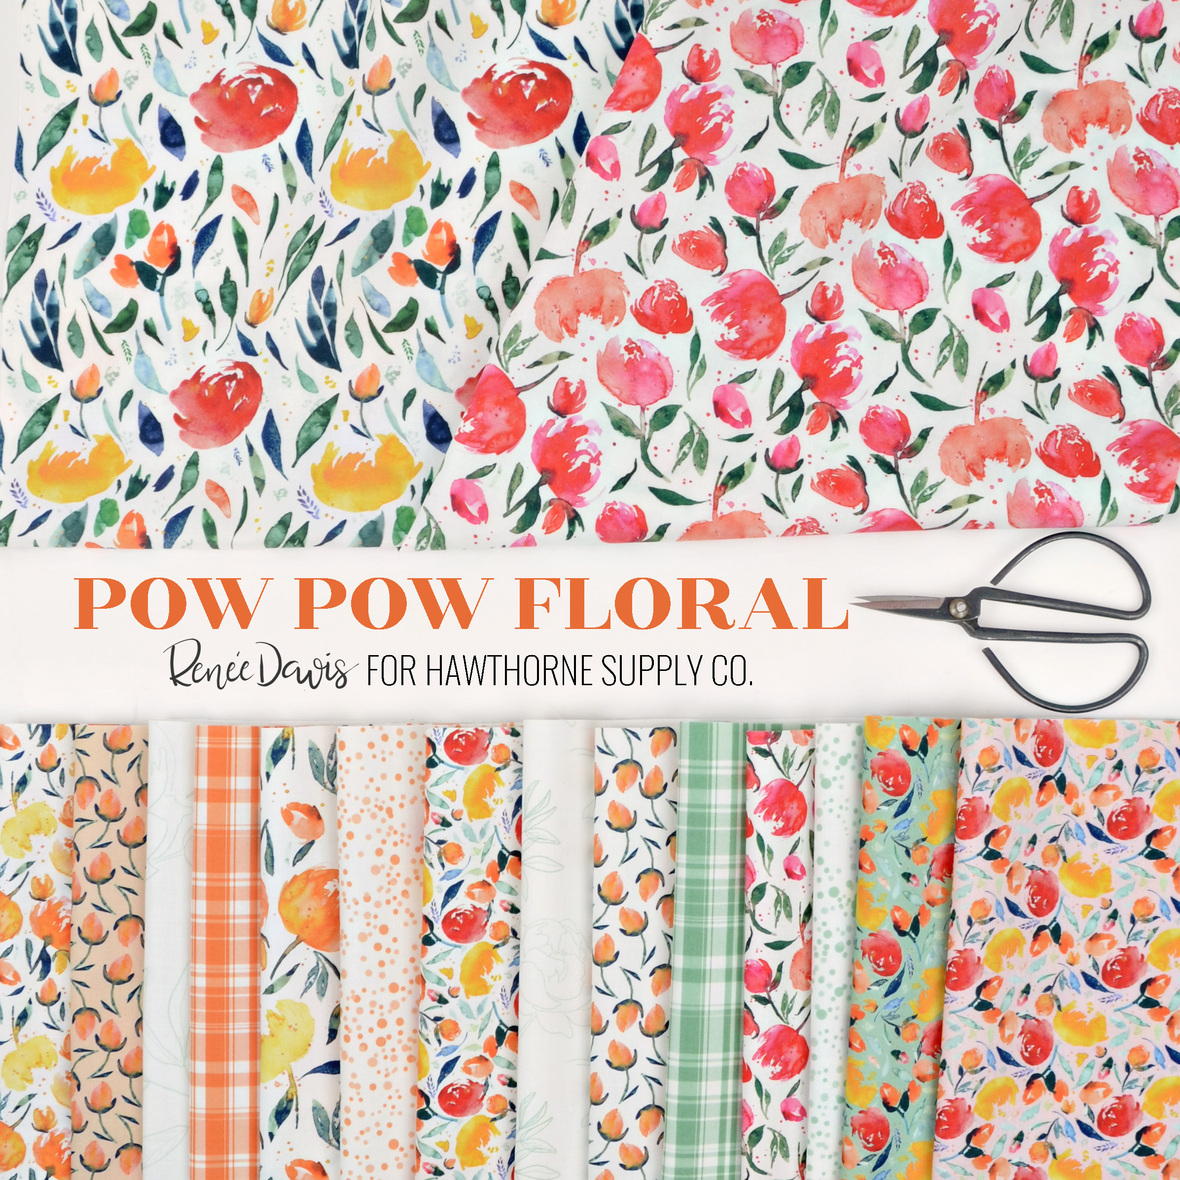 Pow-Pow-Floral-from-Renee-Davis-for-Hawthorne-Supply-Co.